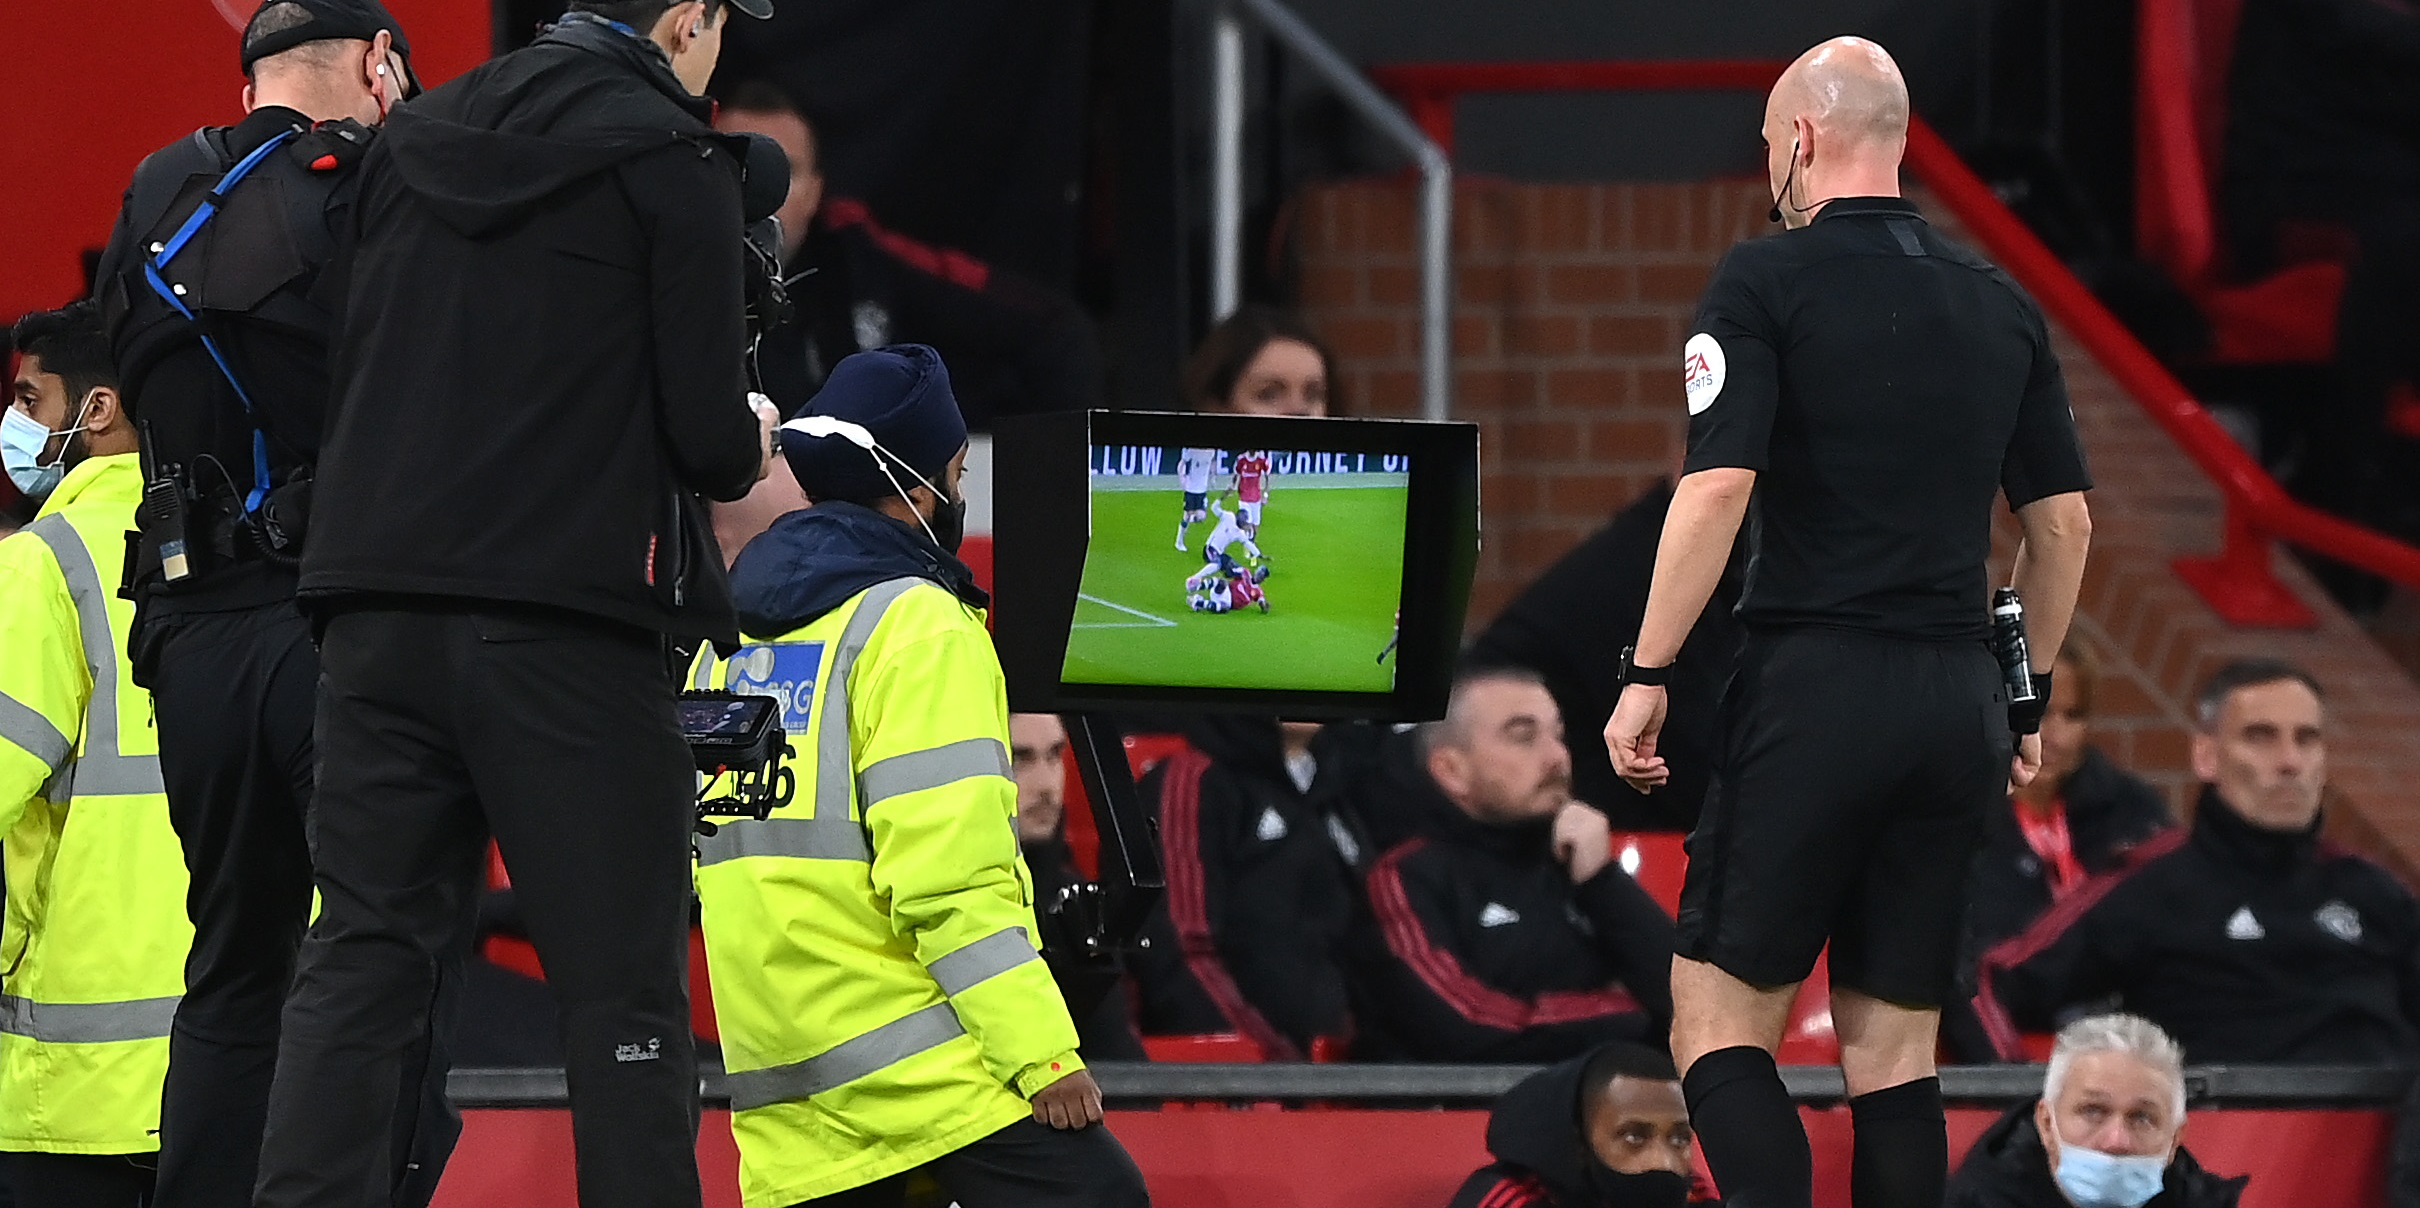 Ex-referee pans 'clear and obvious error' from Anthony Taylor in handling contentious tackle in Liverpool's Old Trafford win